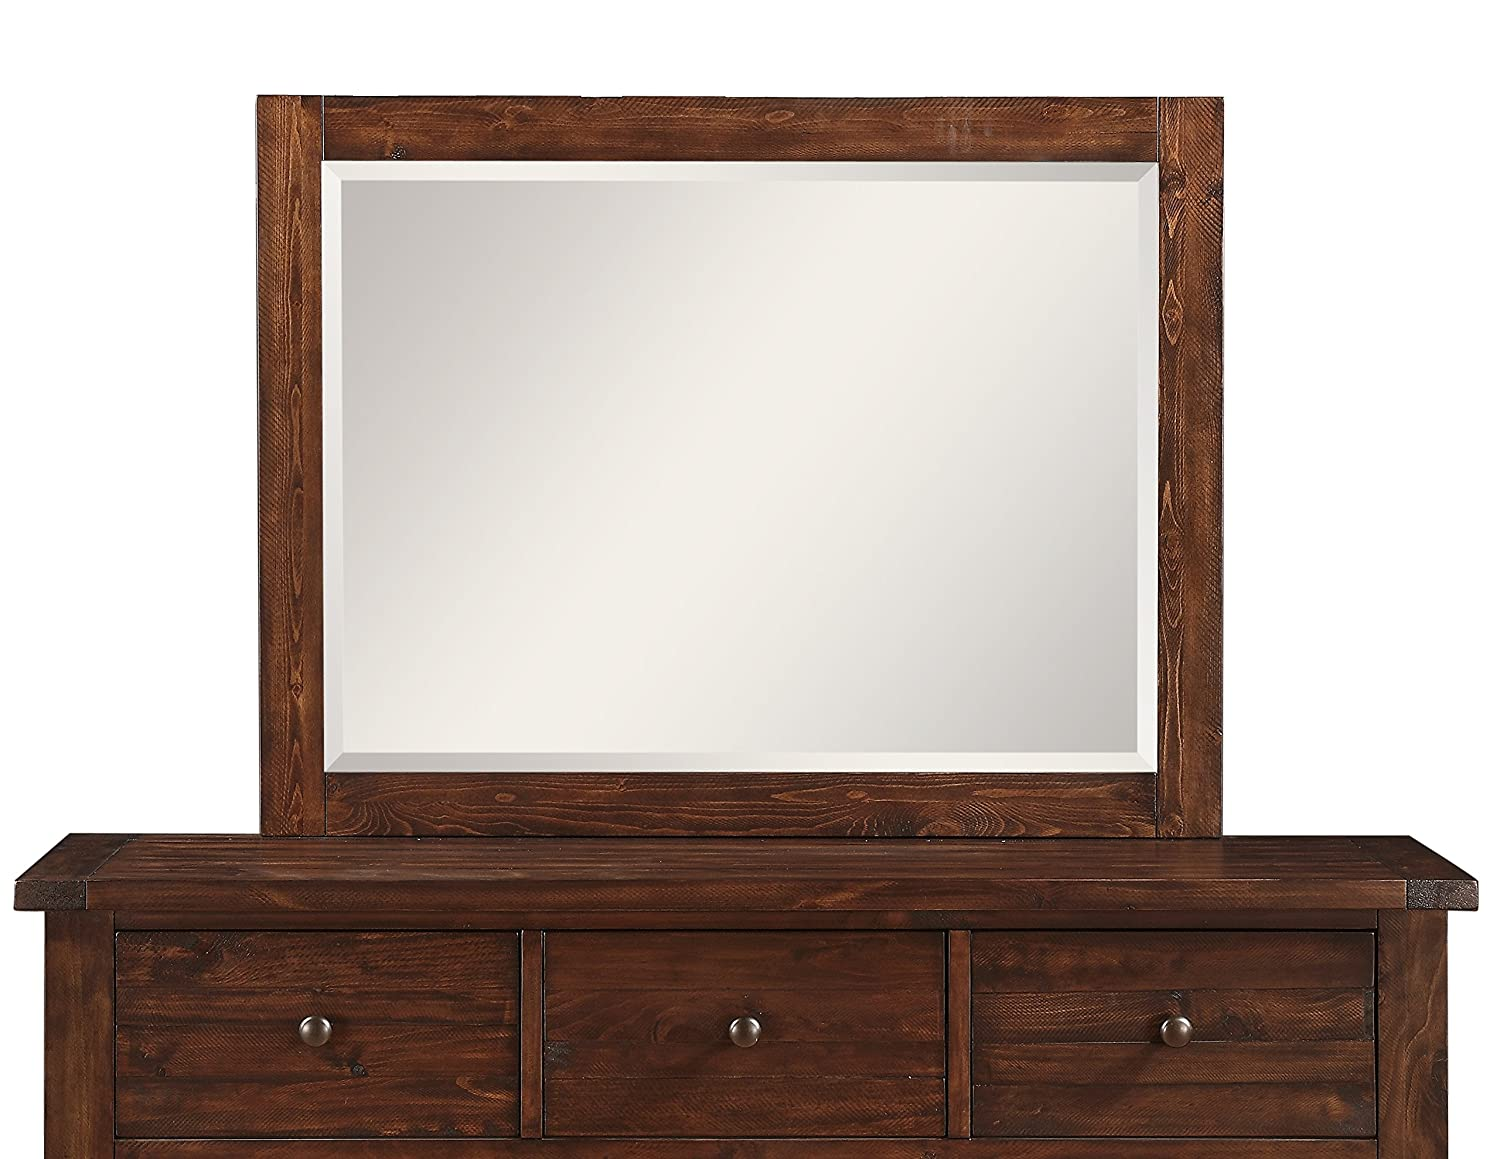 Modus Furniture 9CR183 Cally Solid Wood Mirror, Antique Mocha